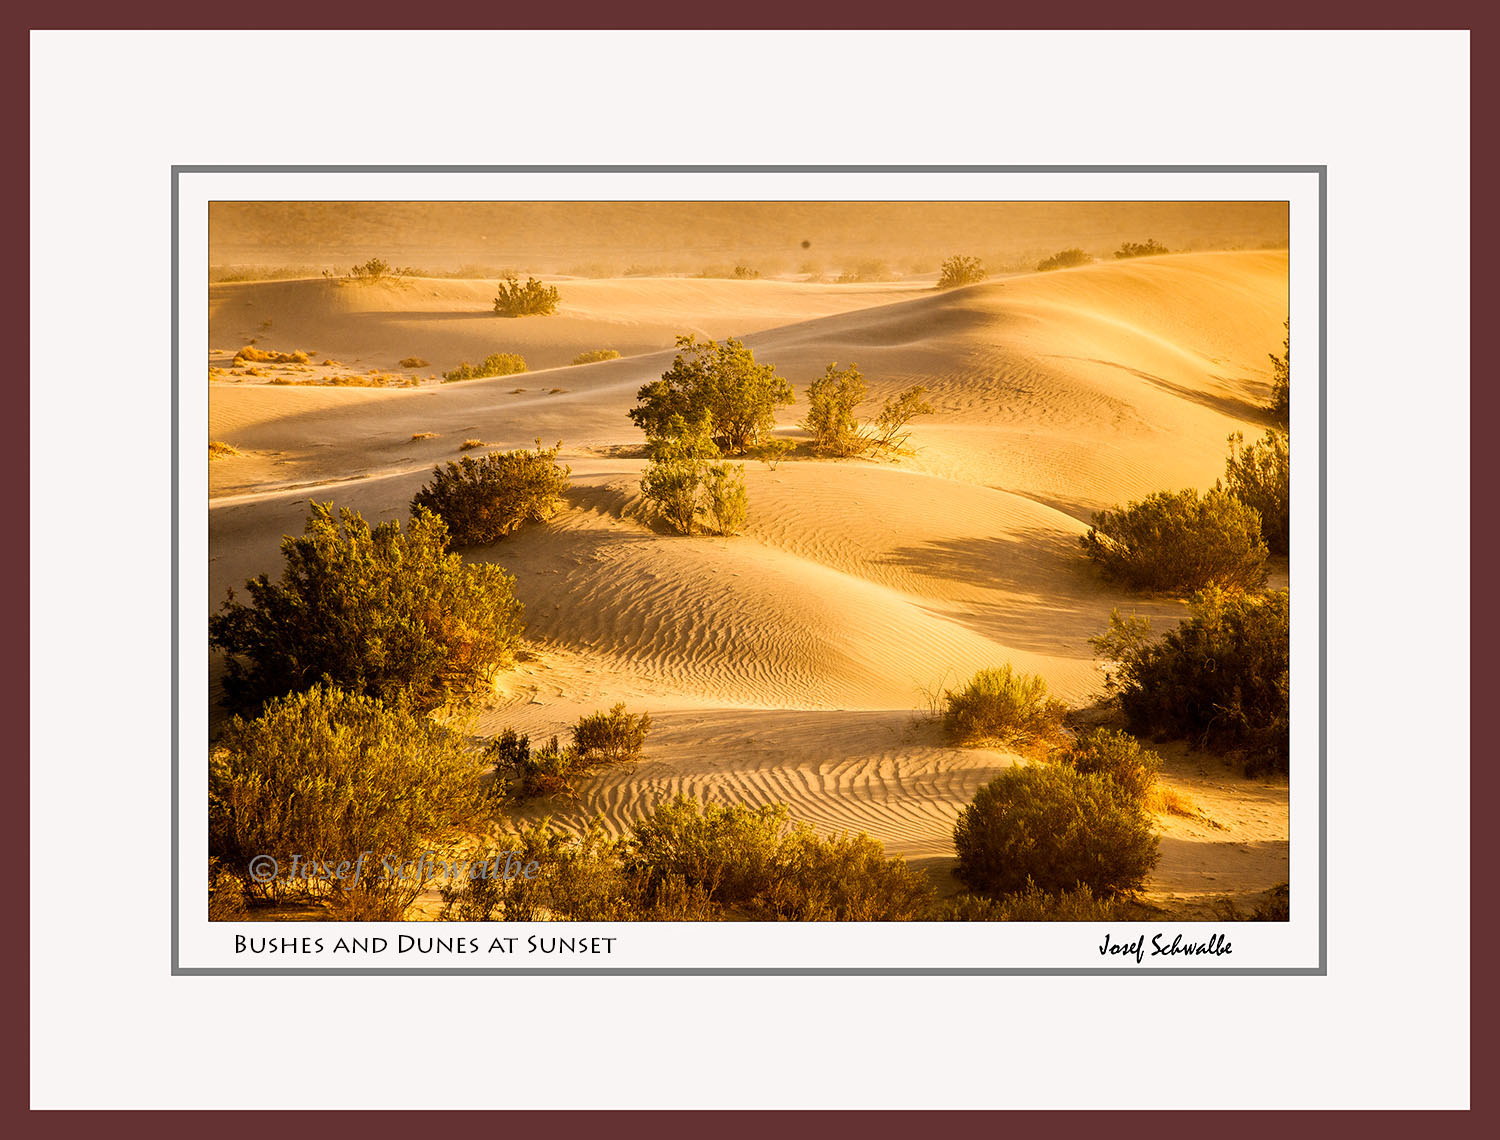 Bushes and Dunes at Sunset